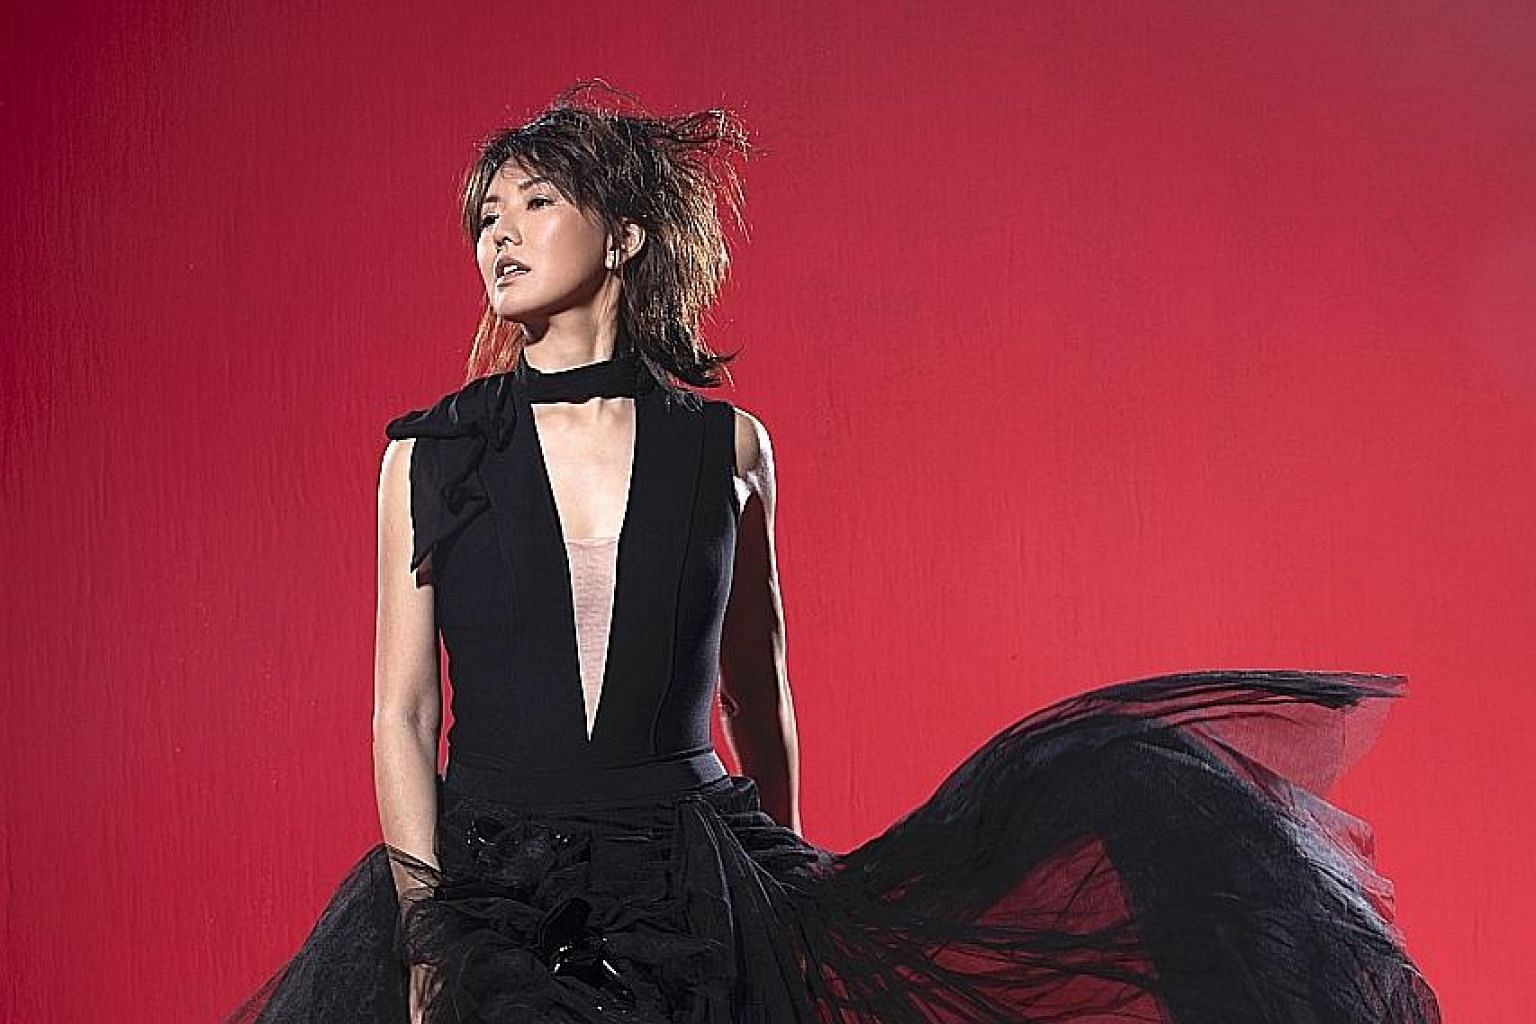 Home-grown singer Stefanie Sun marks 20 years of her singing career this year. The details of her latest tour have yet to be unveiled.